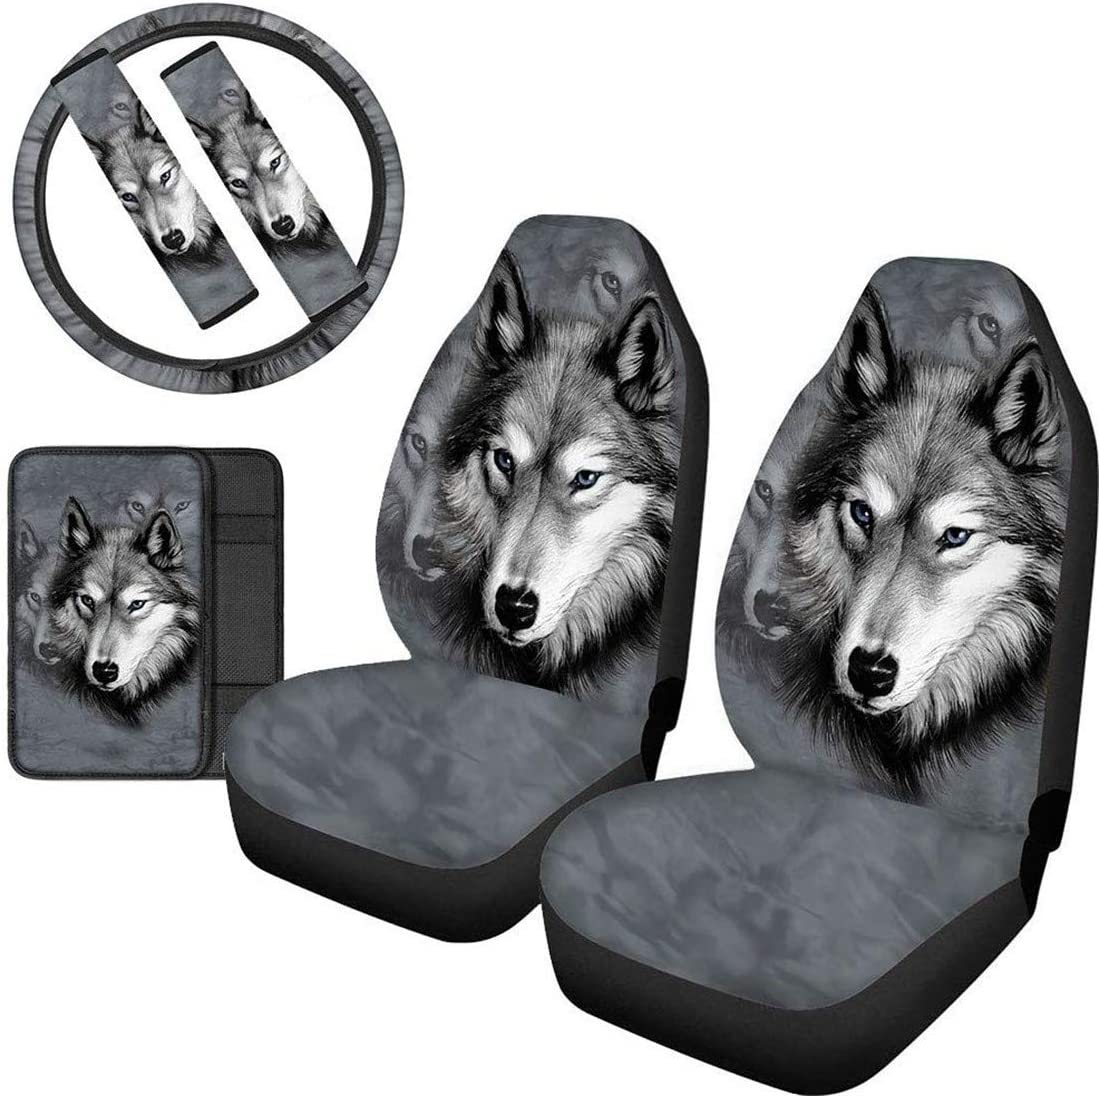 Upetstory Seat Covers Finally popular brand for Cars Front Steering Wheel Popular standard Seats Cool C